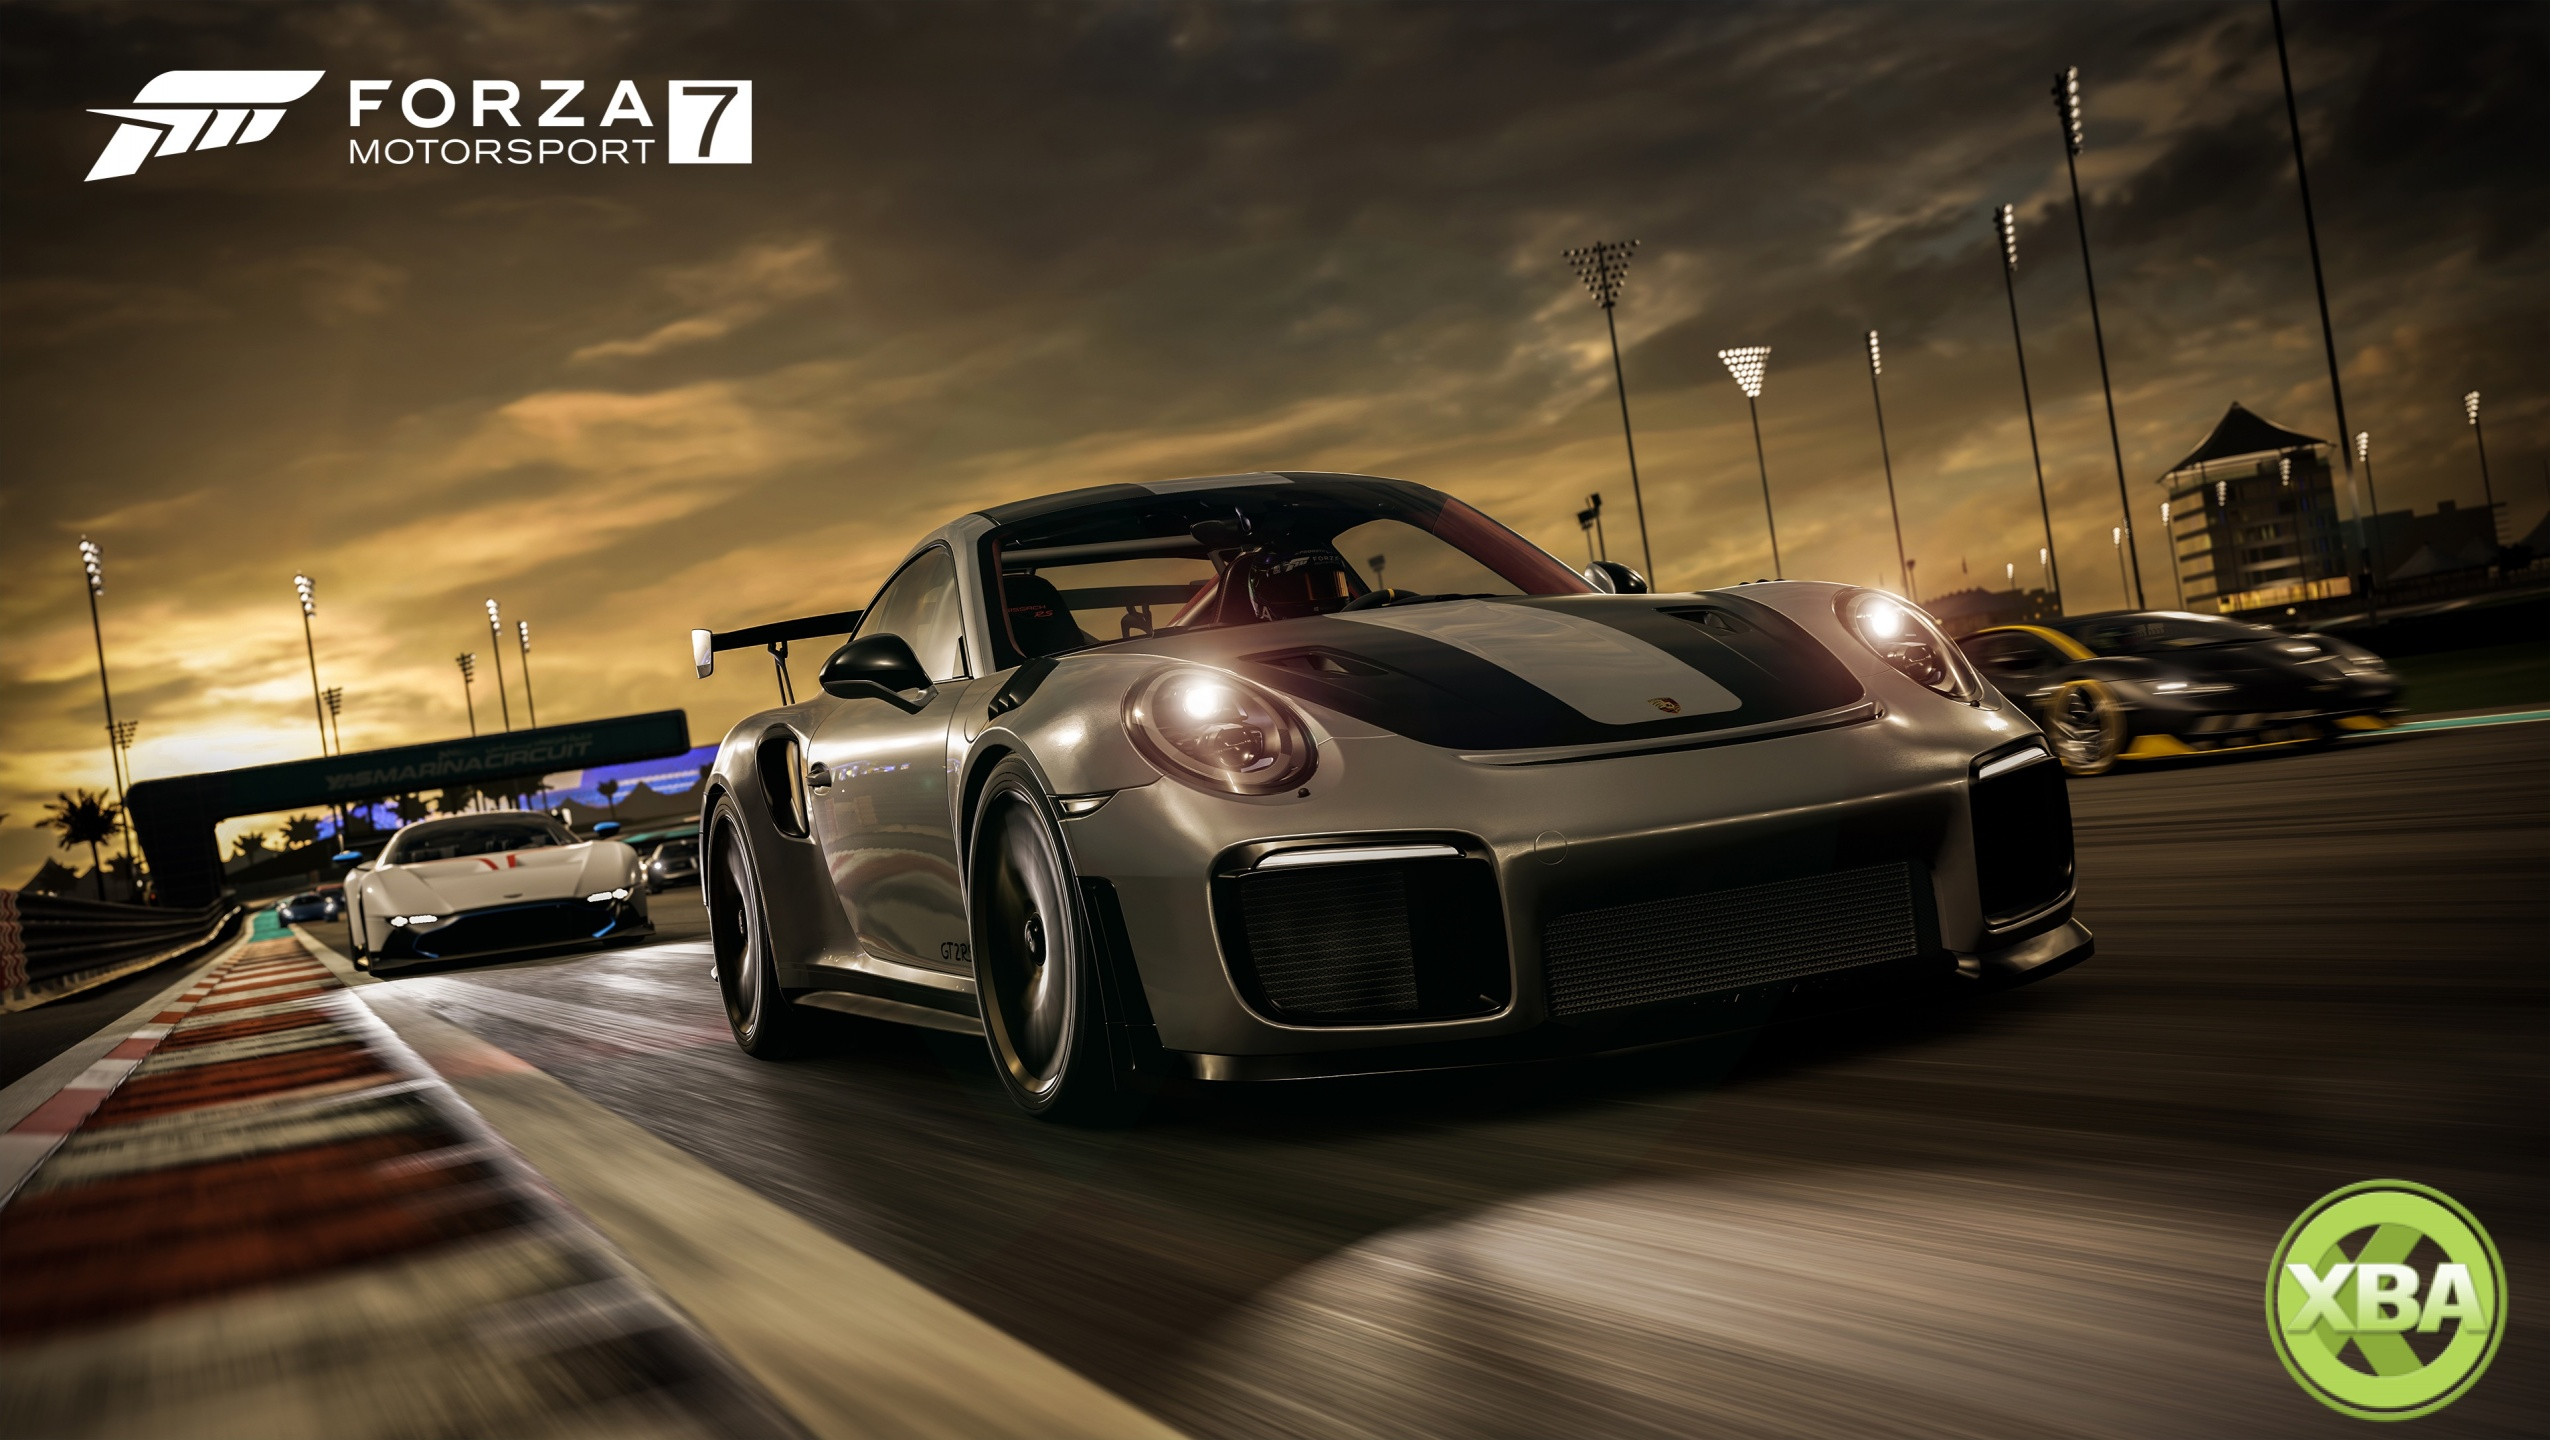 Forza Motorsport 7 Officially Goes Gold; Free Demo Coming this Month